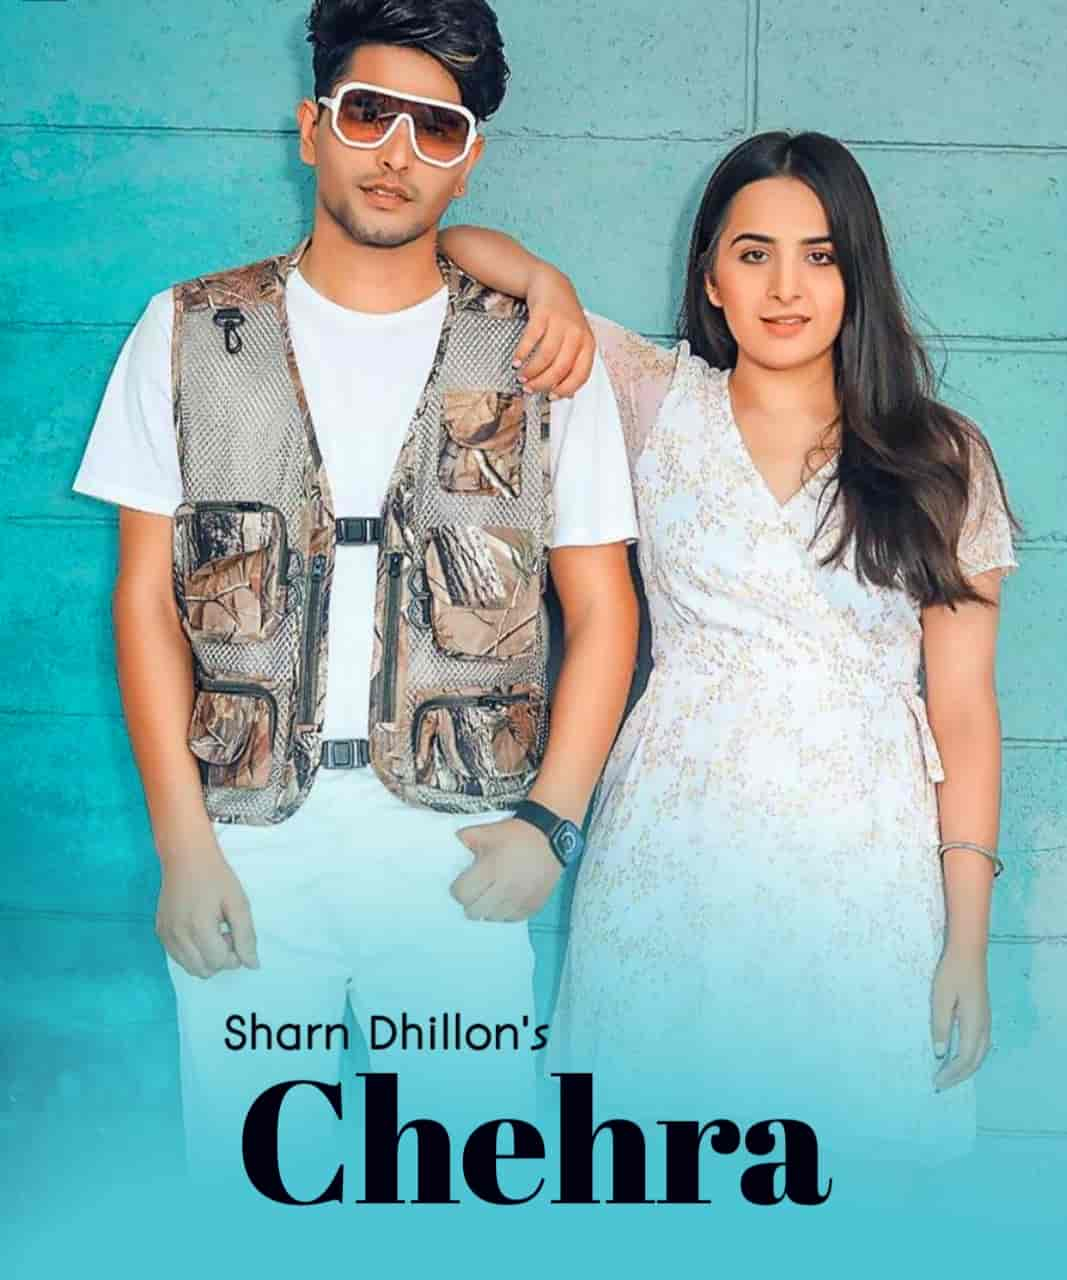 Chehra Punjabi Song Image By Sharn Dhillon